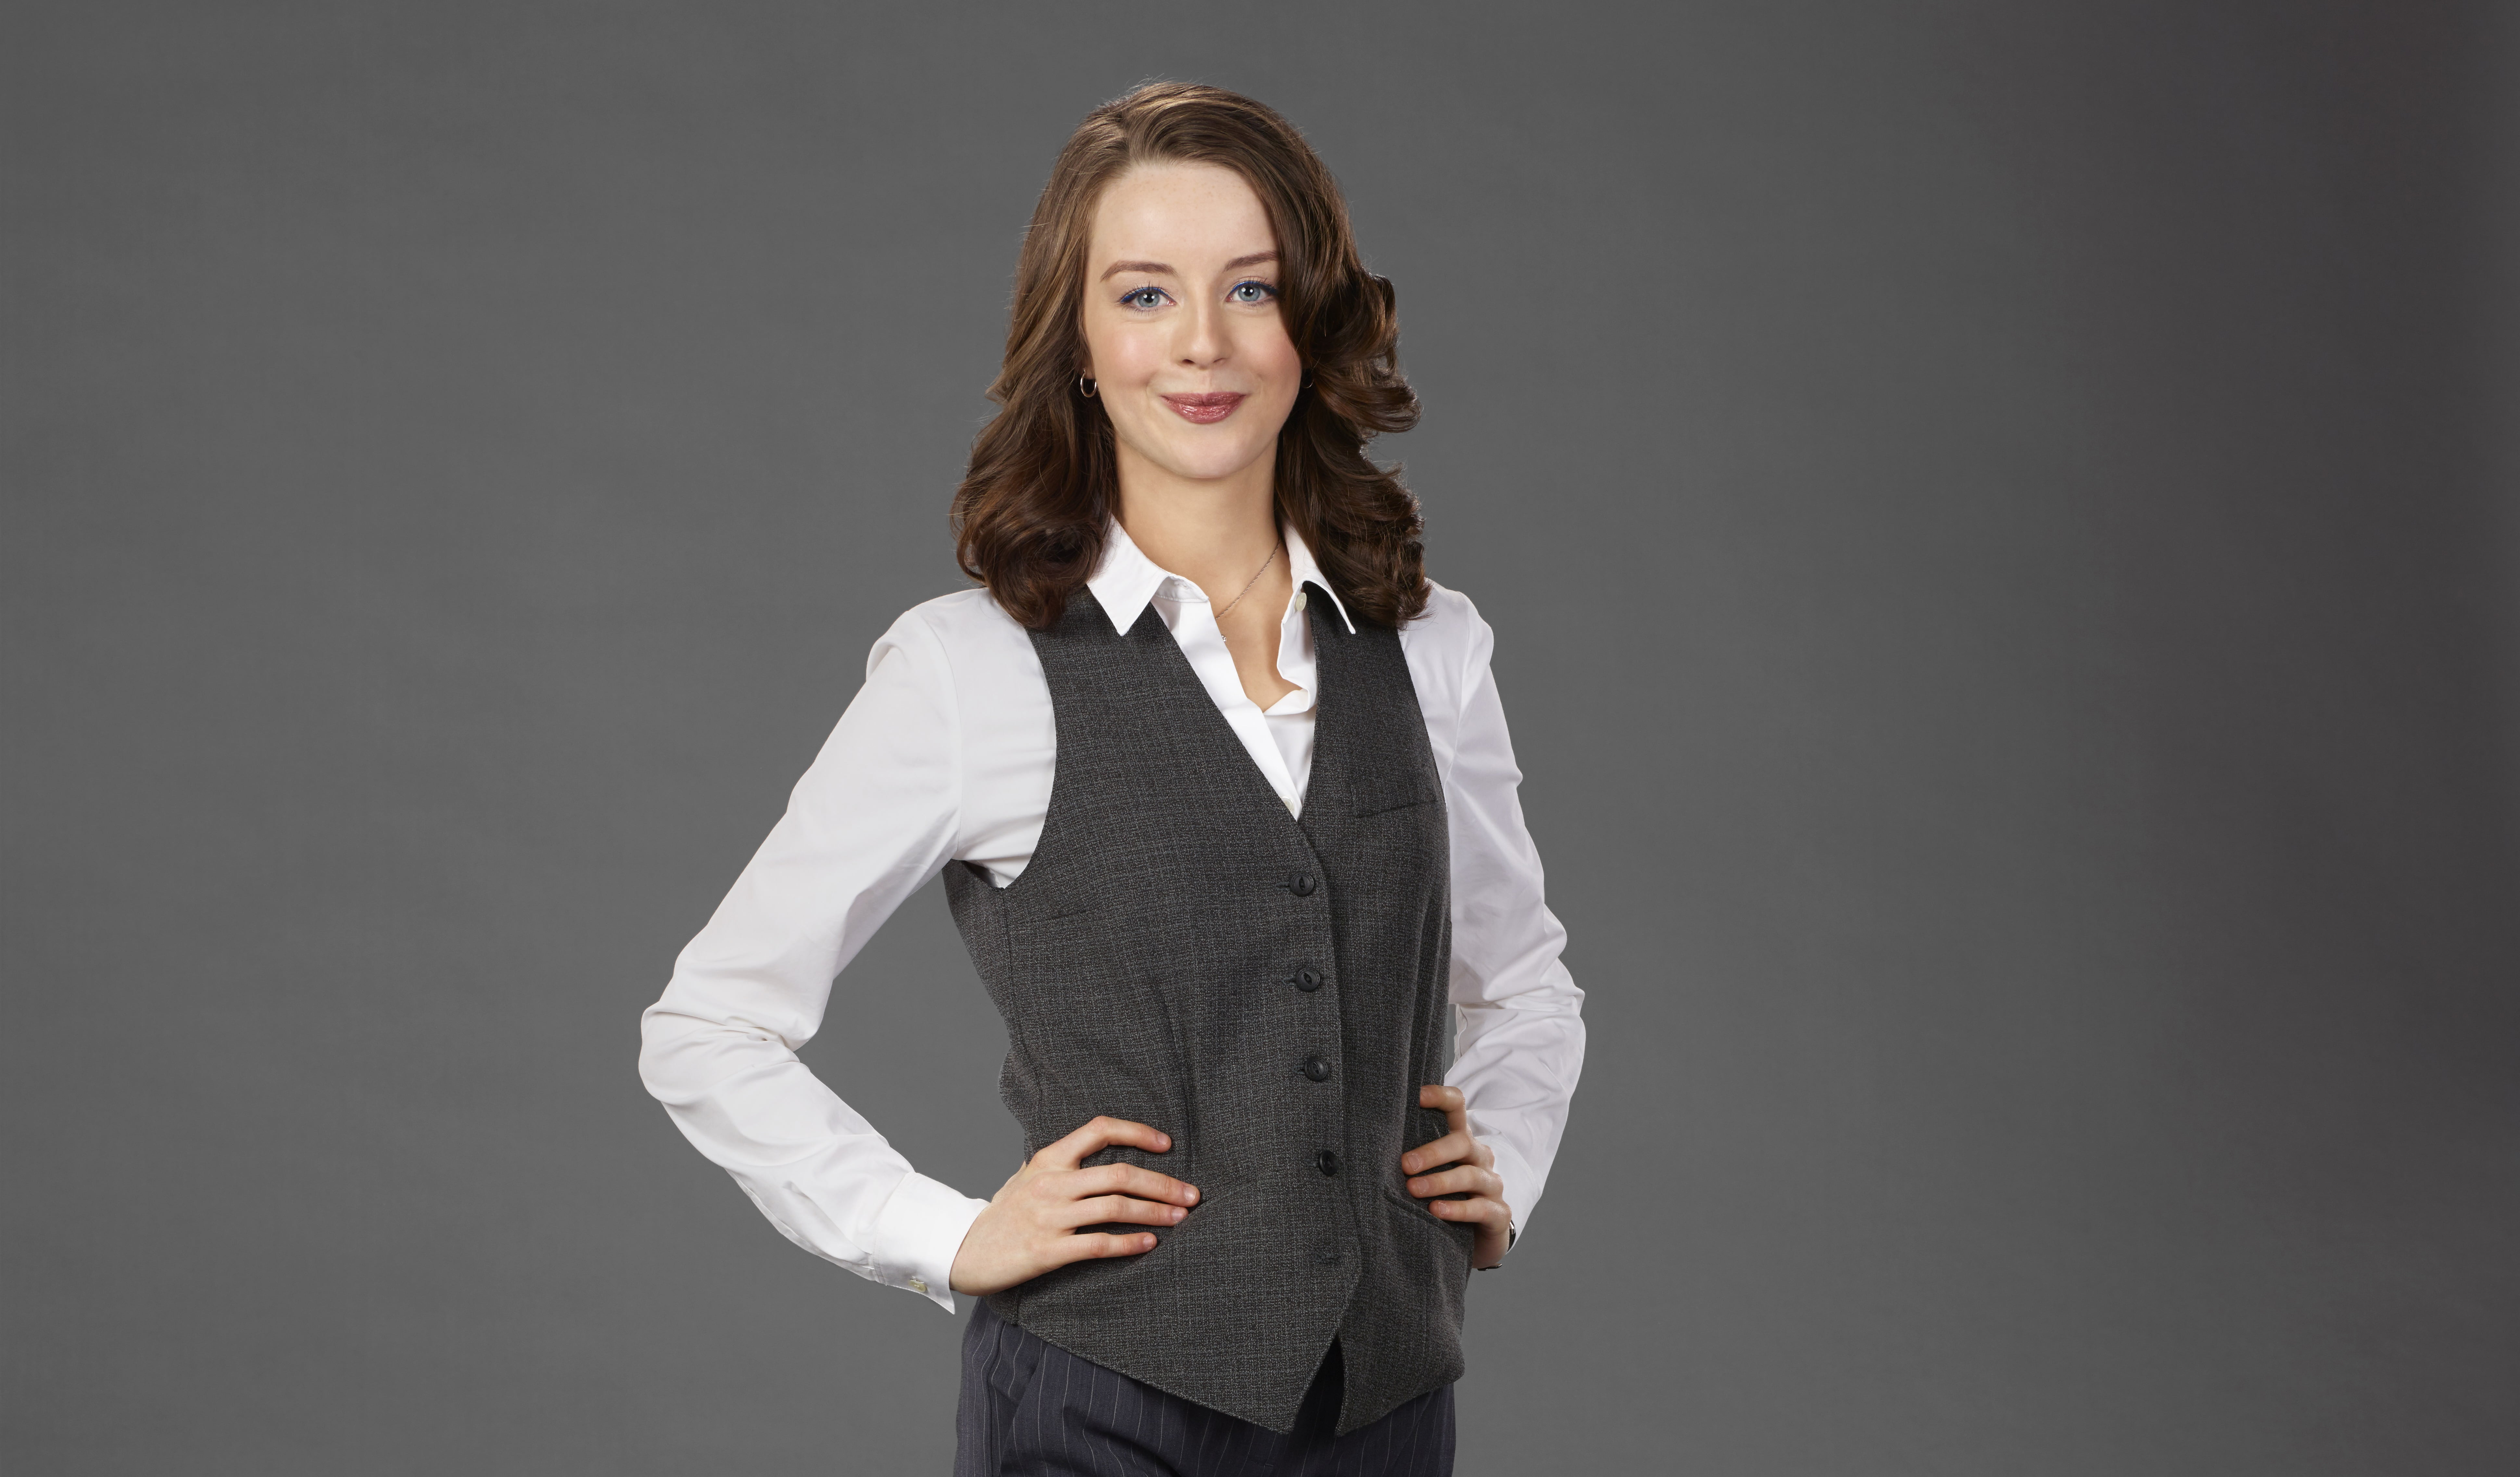 kacey rohl gallerykacey rohl instagram, kacey rohl gif, kacey rohl supernatural, kacey rohl arrow, kacey rohl wayward pines, kacey rohl the magicians, kacey rohl imdb, kacey rohl vk, kacey rohl marina, kacey rohl wallpaper, kacey rohl png, kacey rohl fansite, kacey rohl insta, kacey rohl facebook, kacey rohl magicians season 2, kacey rohl wiki, kacey rohl gallery, kacey rohl twitter